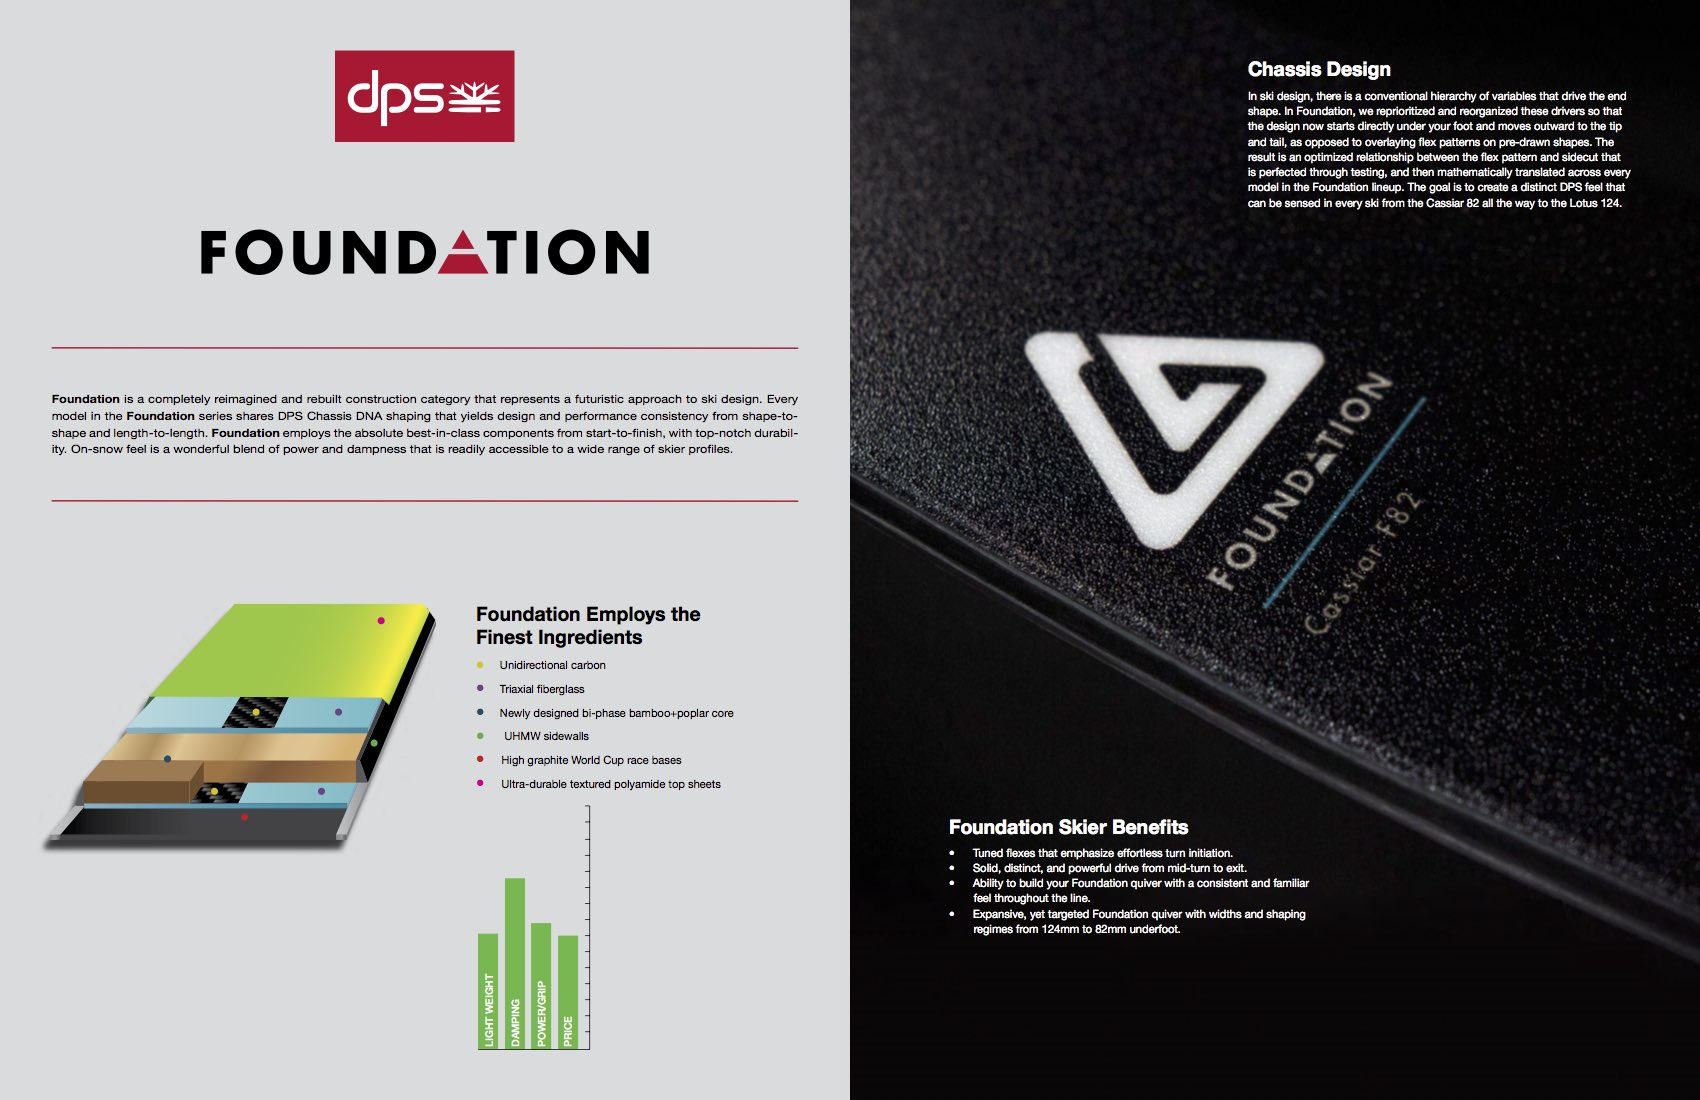 DPS_FoundationLaunch